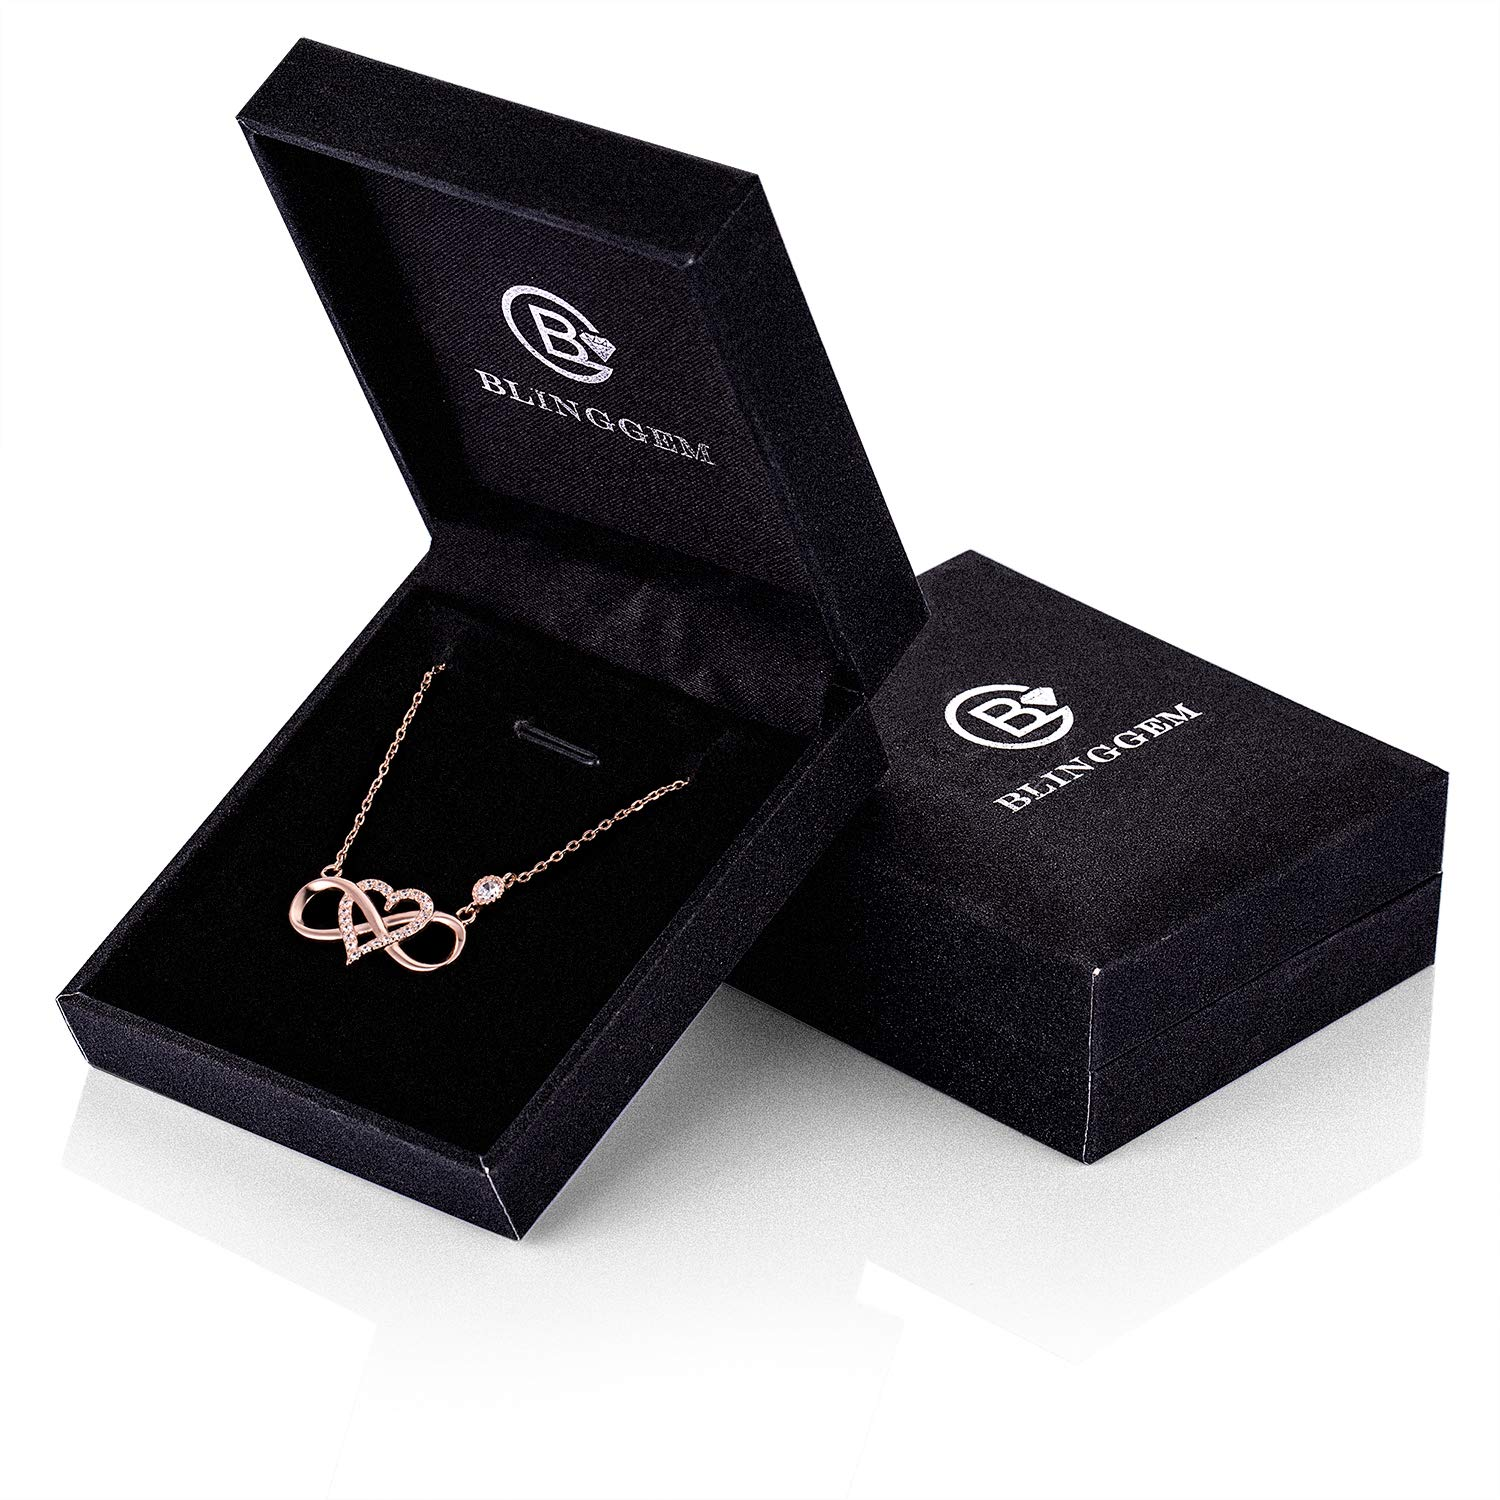 BlingGem Womens Necklace 925 Sterling Silver Infinity Love Pendant with Cubic Zirconia Diamond Heart Jewelry Gift for Graduation Plated 18K Rose Gold